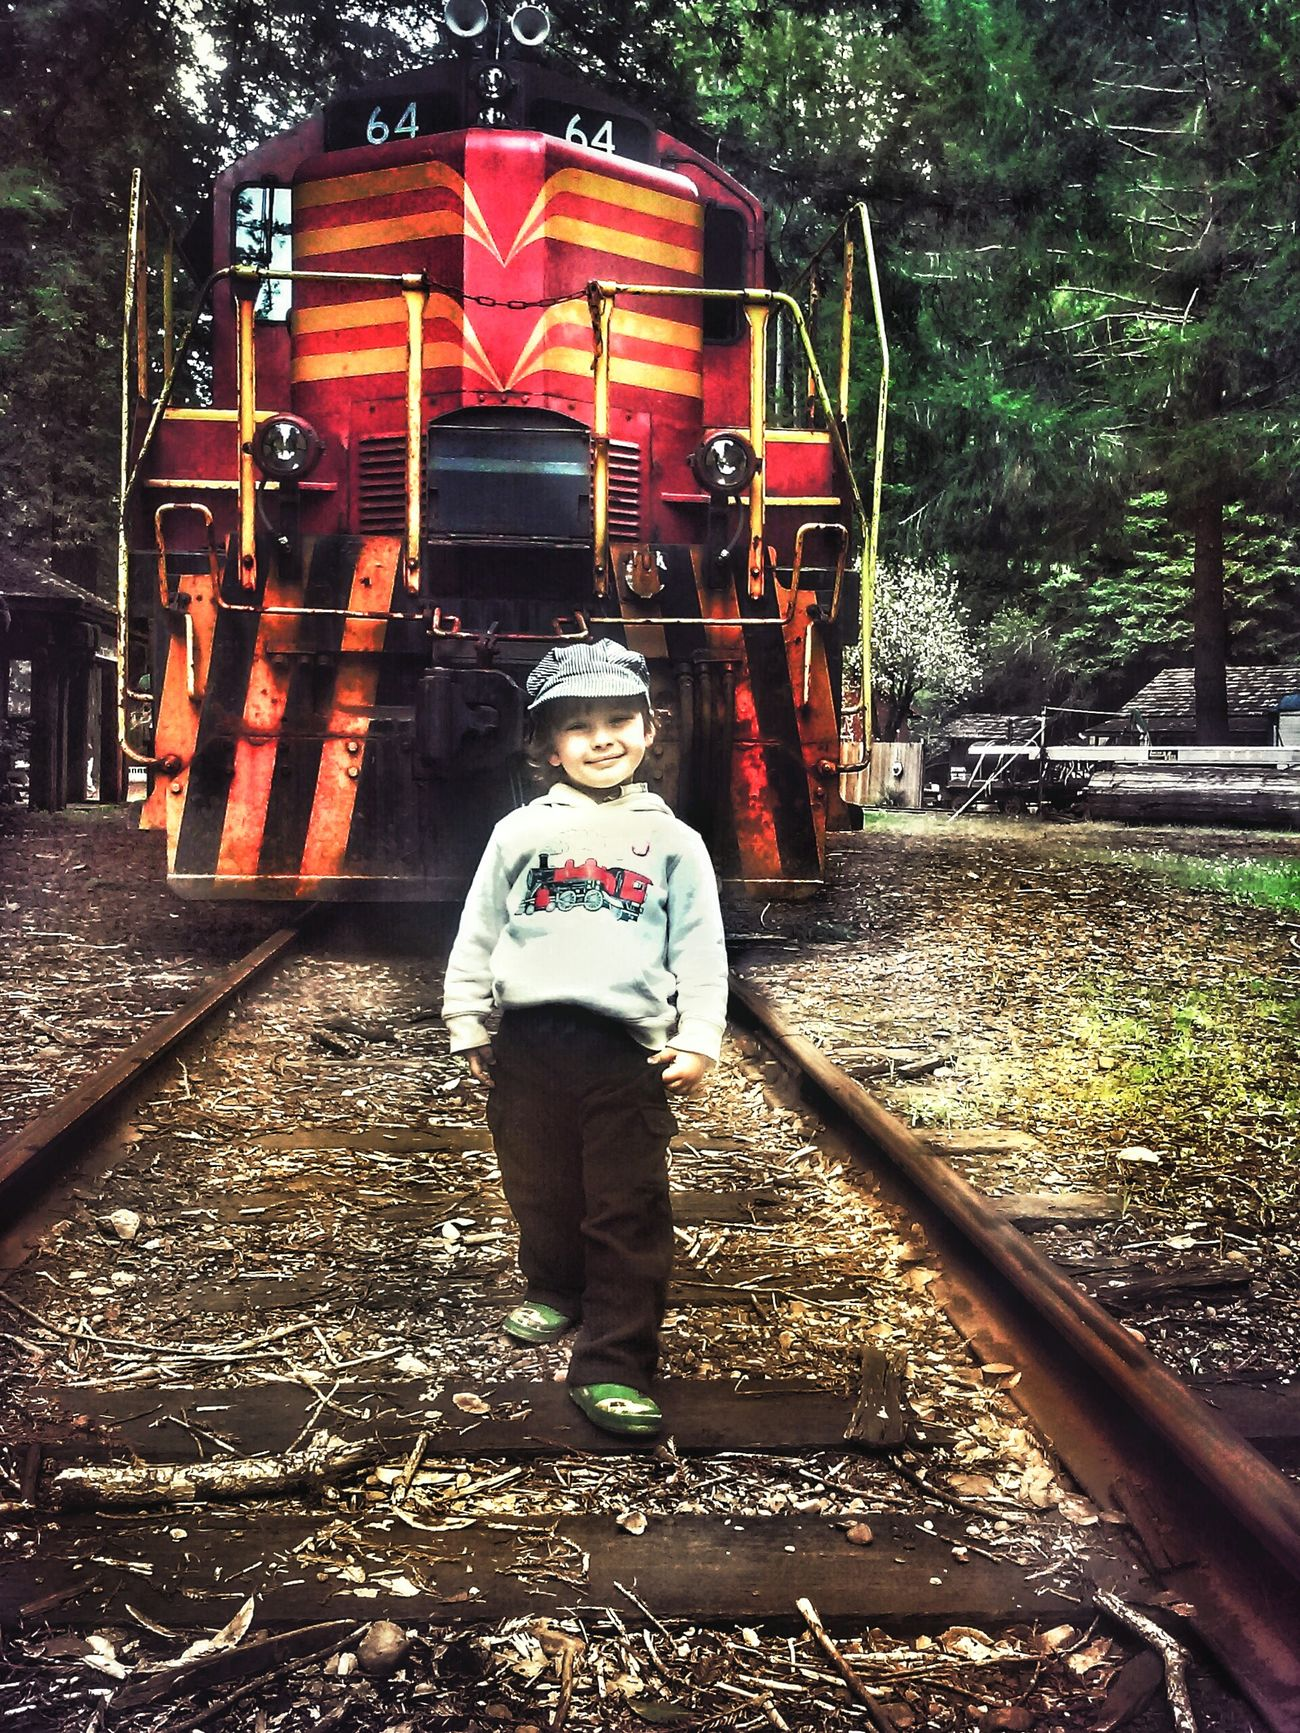 Here Belongs To Me Willits California Countryside The Skunk Train EyeEm Kids Children Eyeem Northen California Children And Trains Children Photography Trains And Railroads Northern California